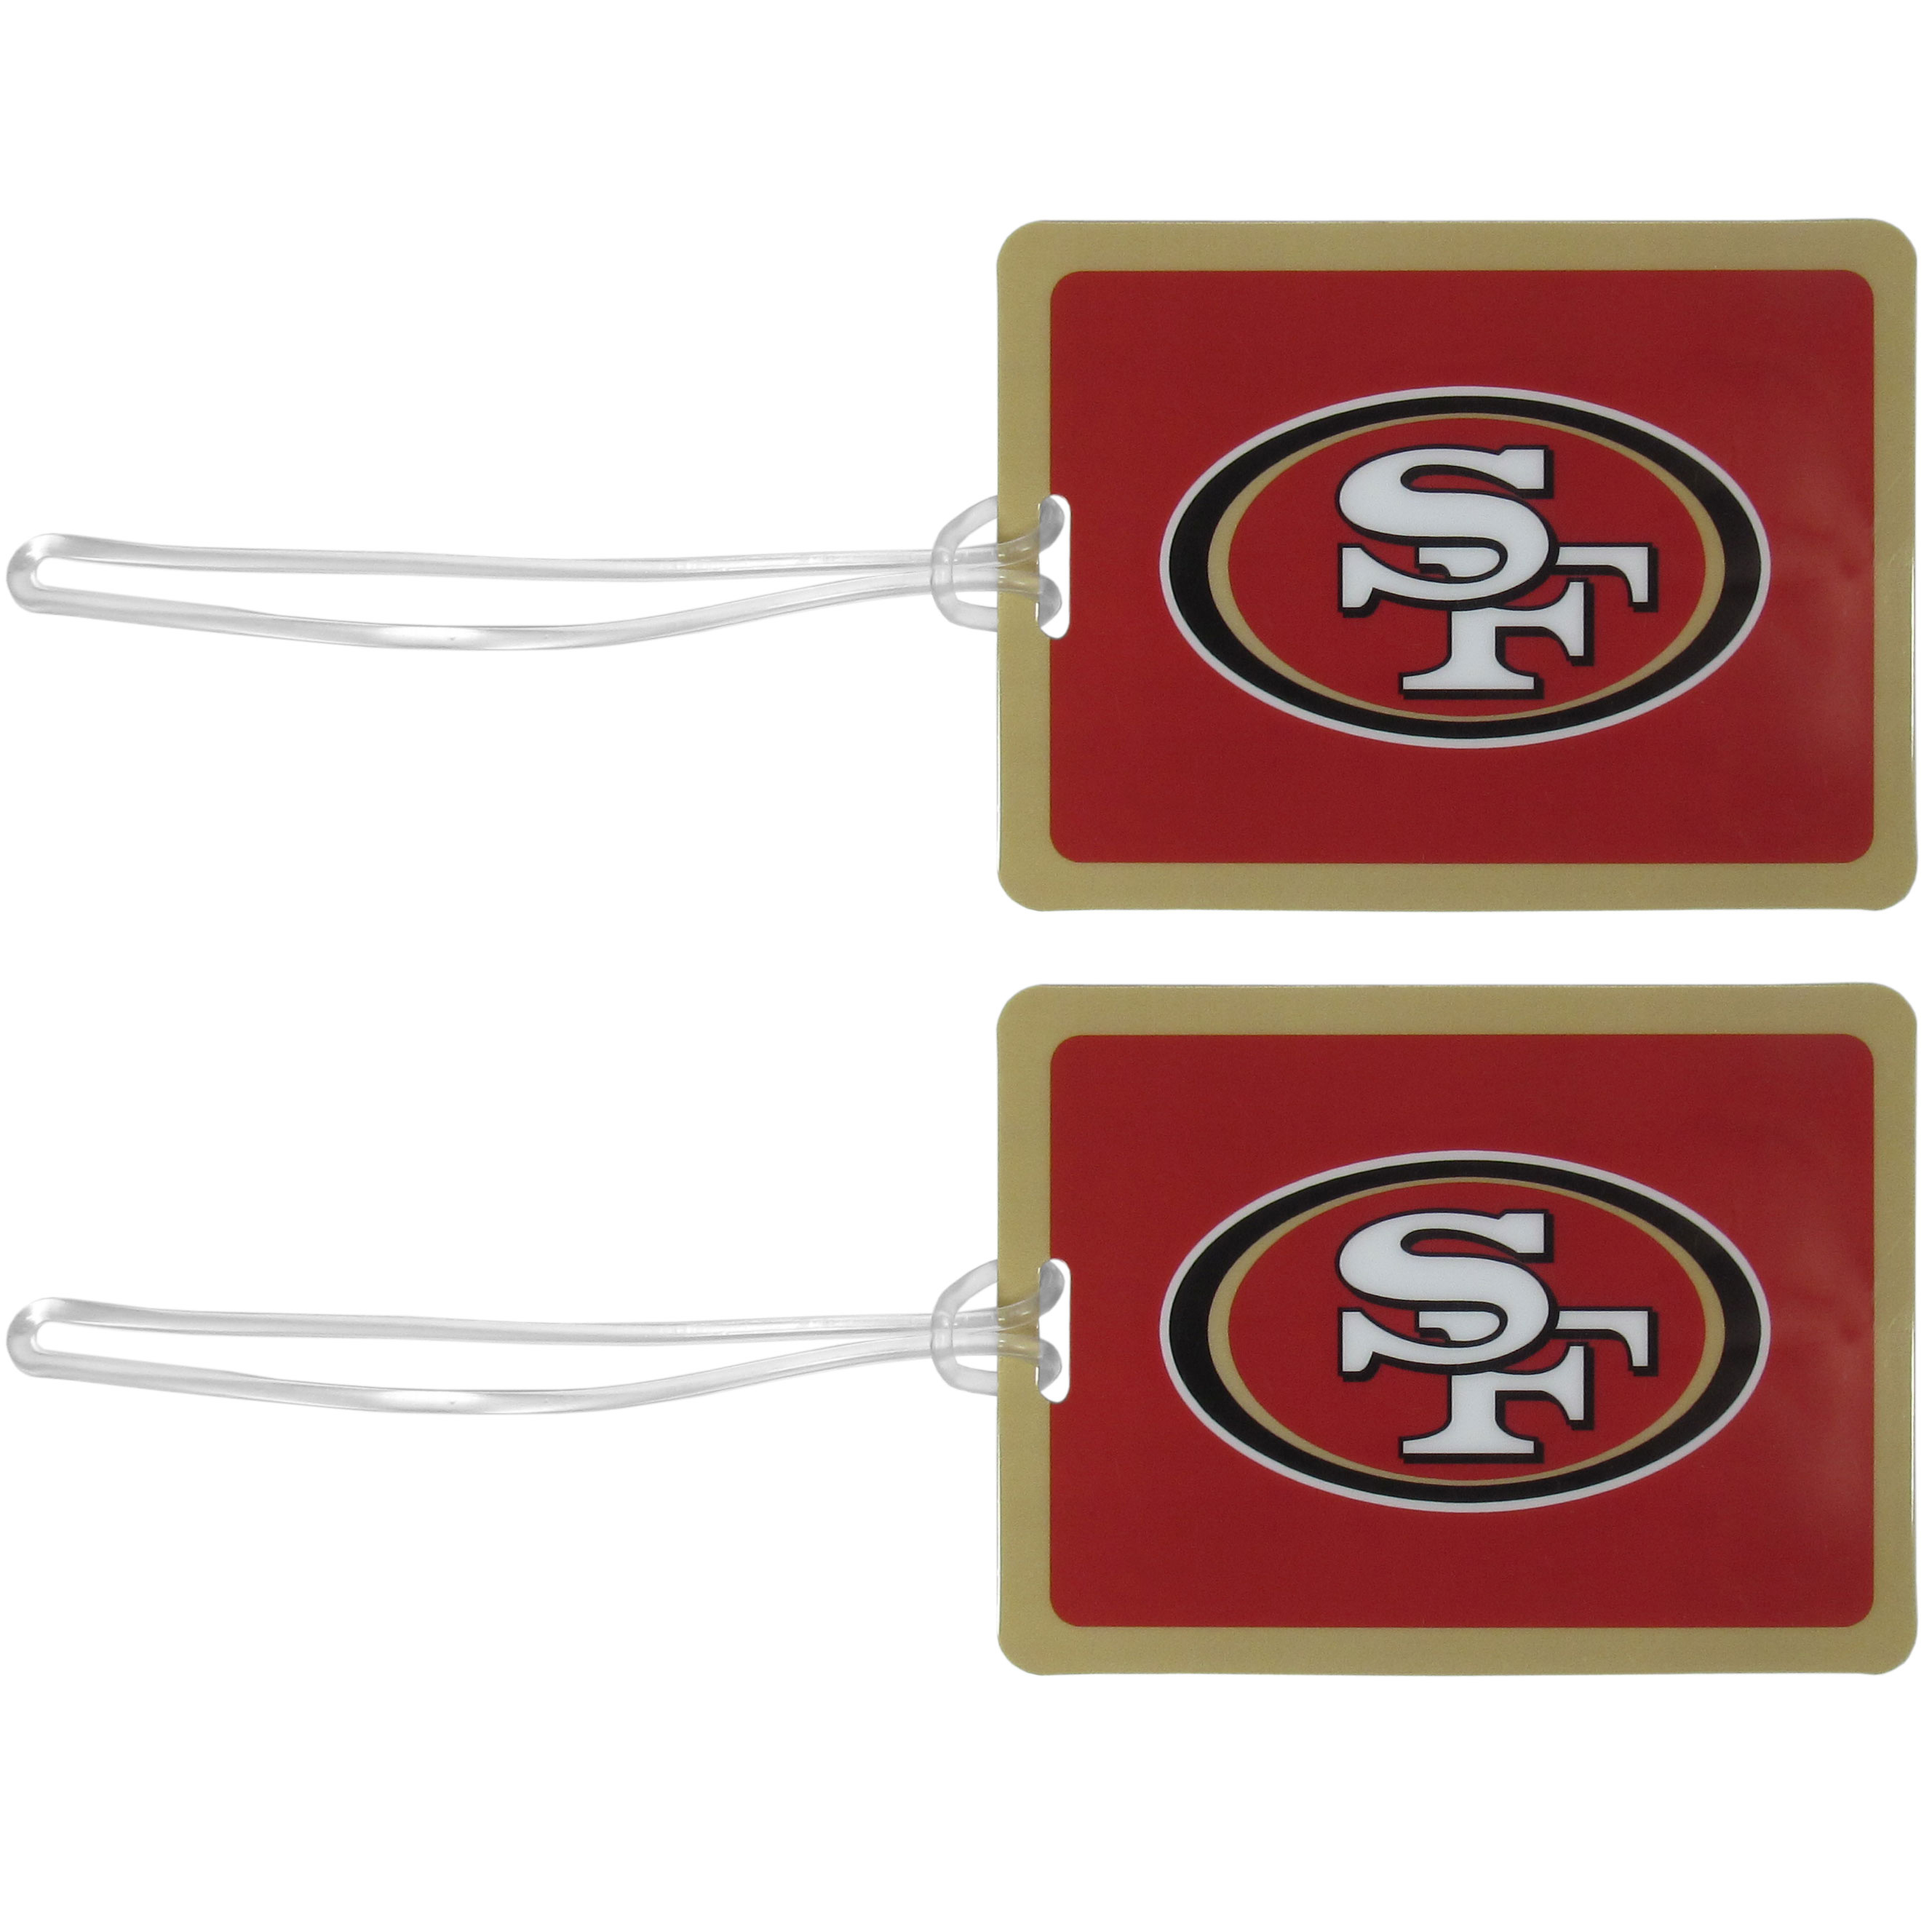 San Francisco 49ers Vinyl Luggage Tag, 2pk - Tired of trying to spot your suitcase or bag in a sea of luggage? Try our large and colorful San Francisco 49ers luggage tags. The tag is 4x3 inches and has a 5 inch cord to attach it easily to your bags, backpacks or luggage. The front of the tag features the team logo in a bright, team colored background and you can write you name, address and phone number on the back of the tag.